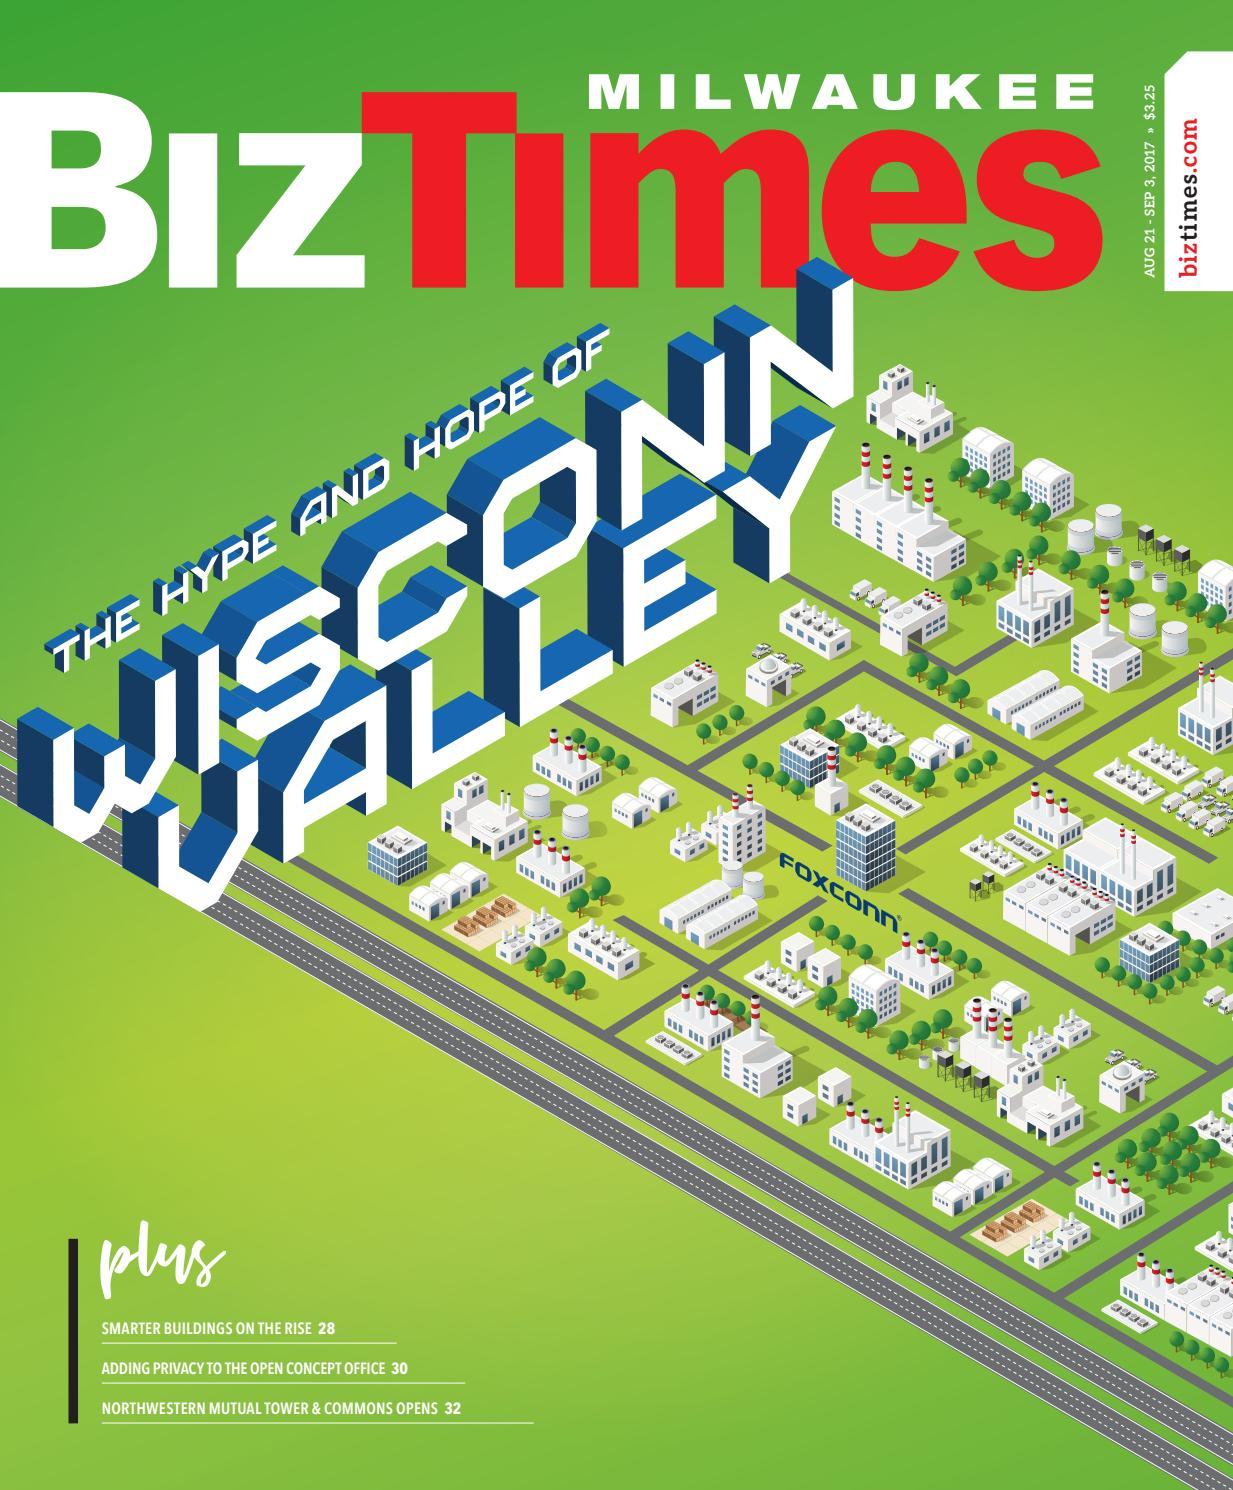 15 Hardwire A Light Fixture 47 Skills You Need To Survive Biztimes Milwaukee August 21 2017 By Media Issuu